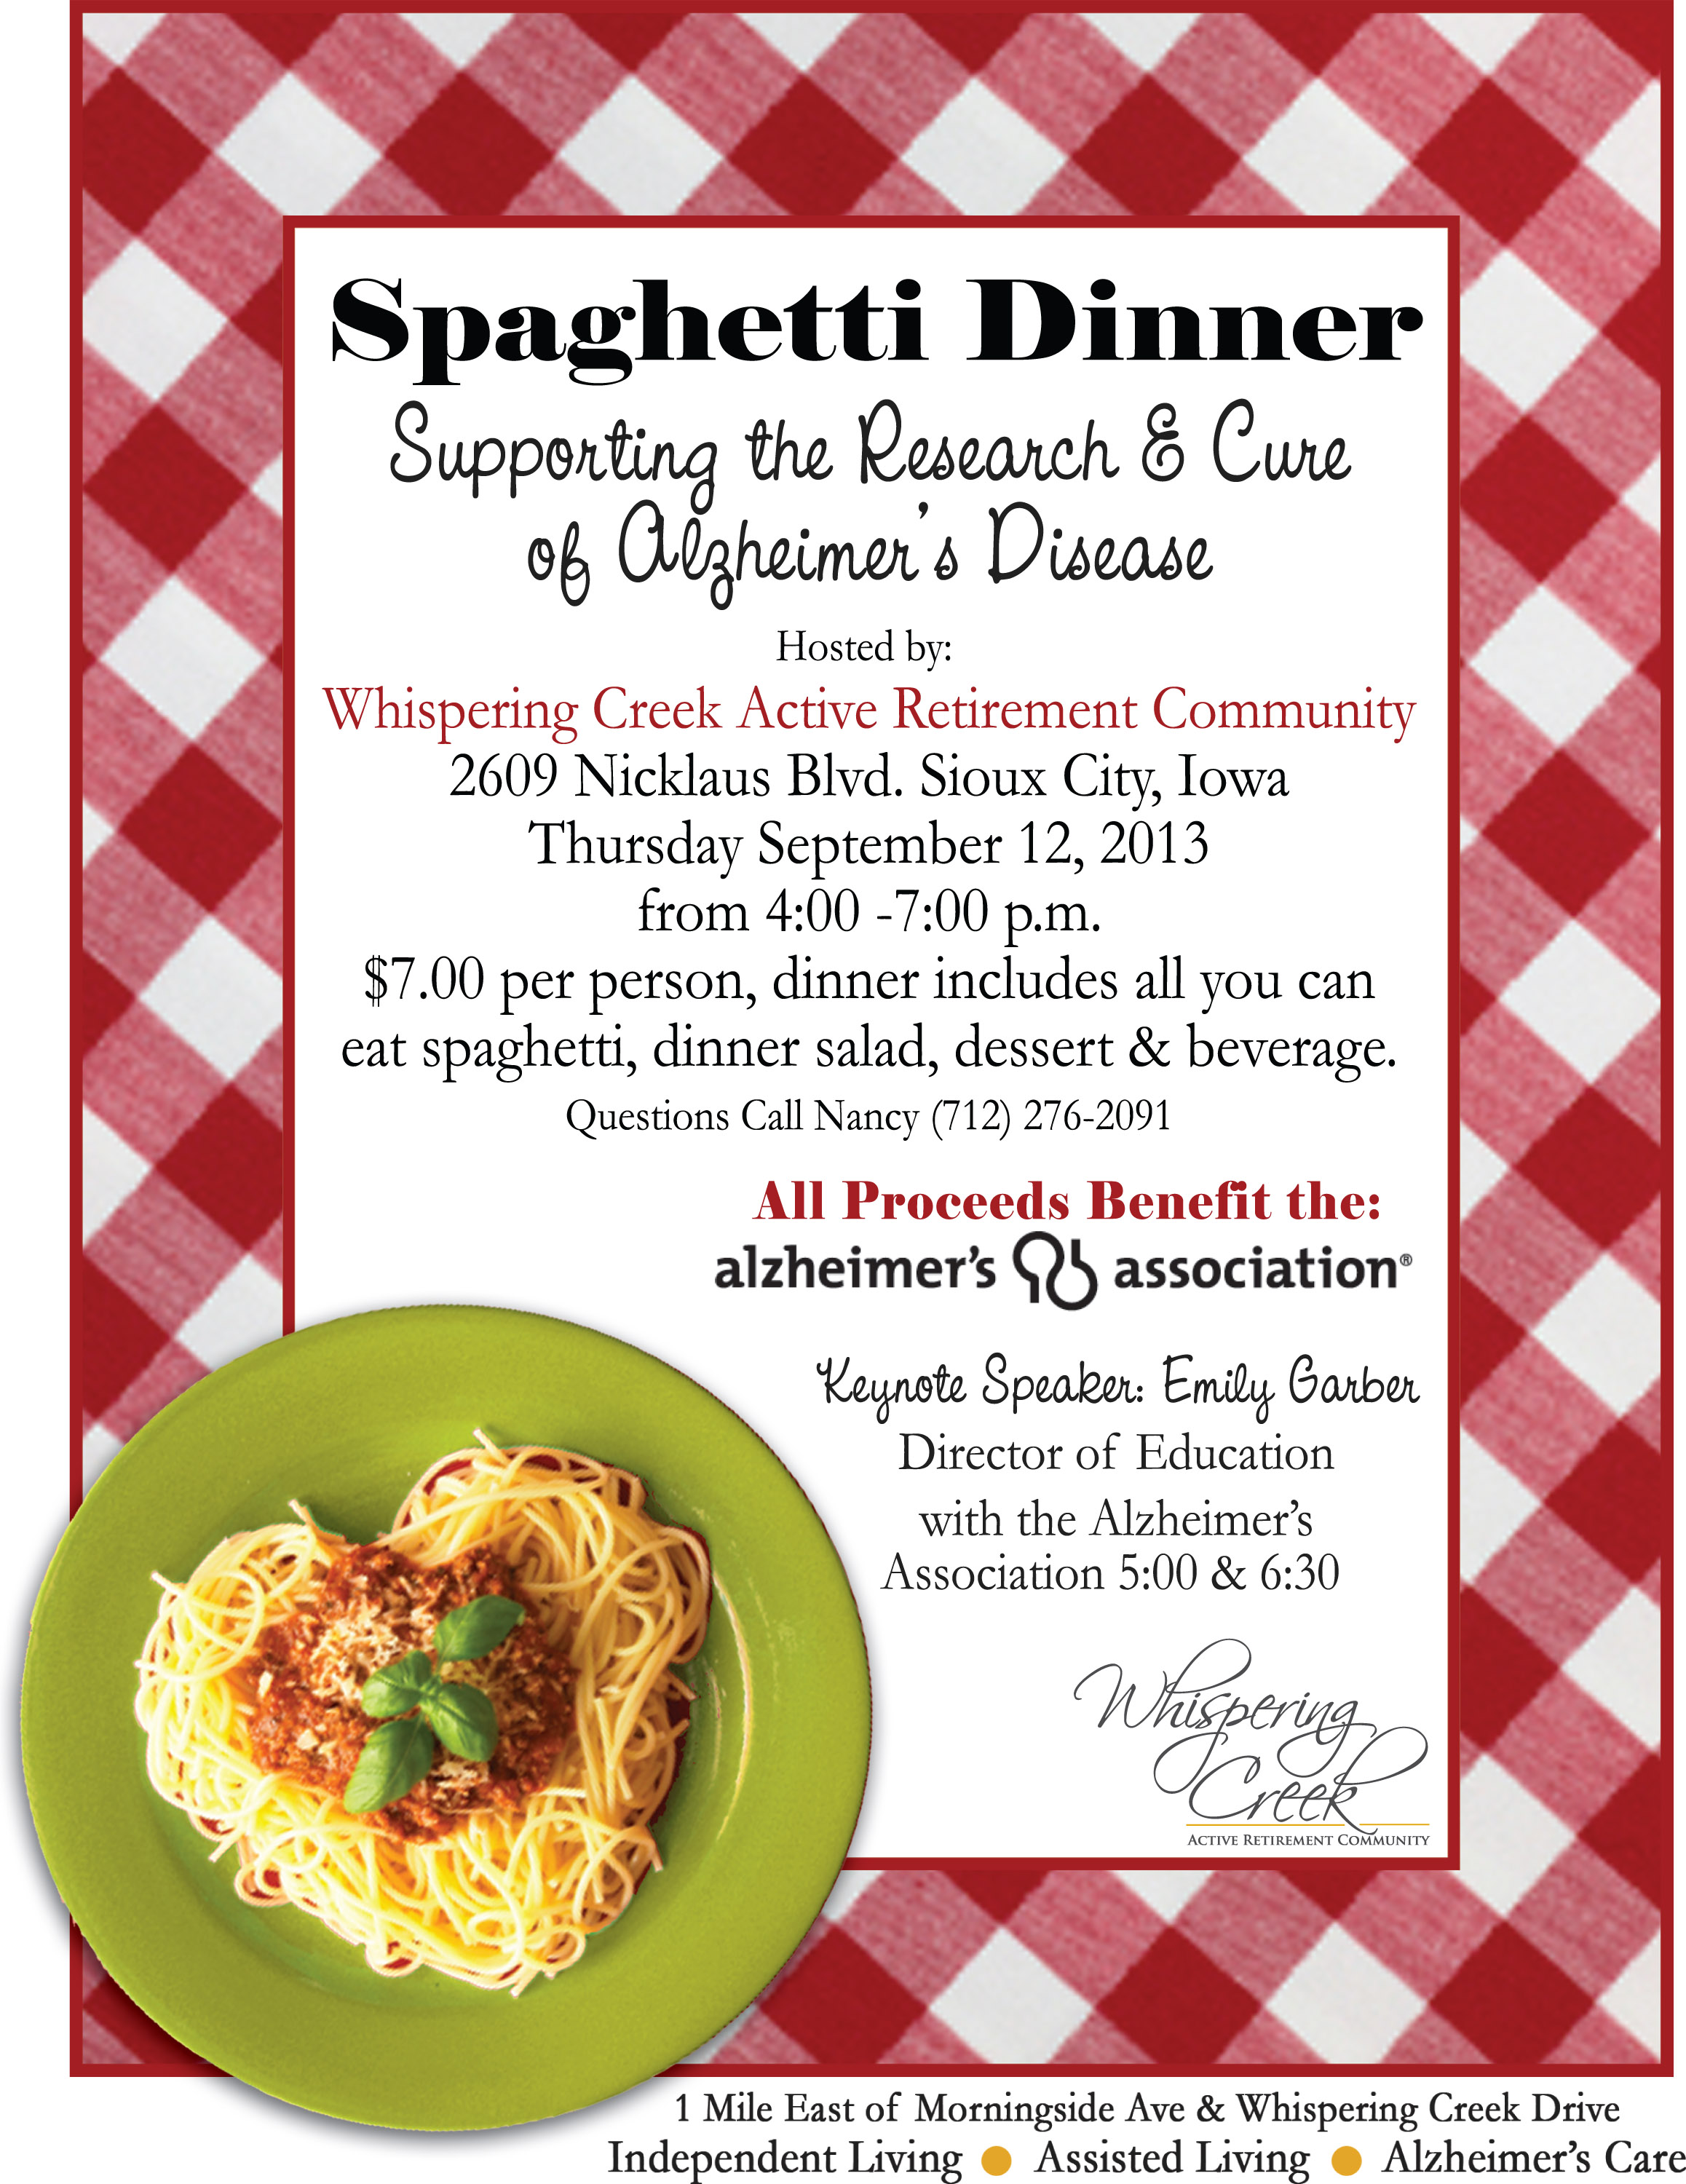 spaghetti dinner flyer template sample customer service resume spaghetti dinner flyer template psd flyer templates for photoshop by elegantflyer spaghetti dinner flyer sample